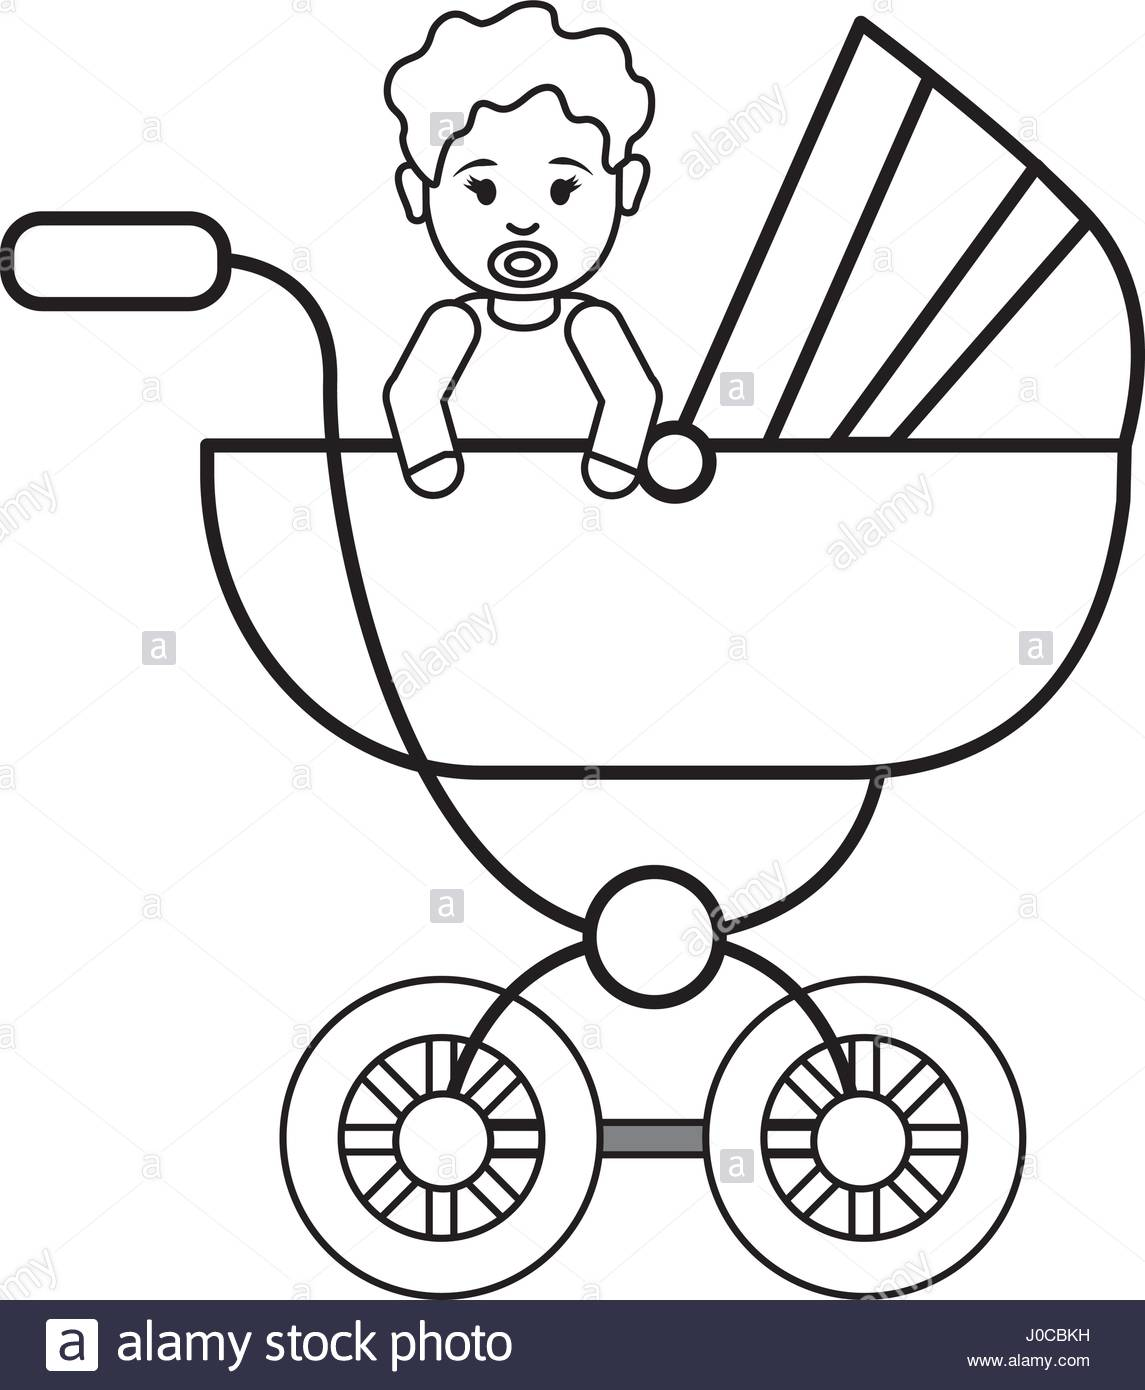 1145x1390 Silhouette Baby Girl Inside Carriage Icon Stock Vector Art